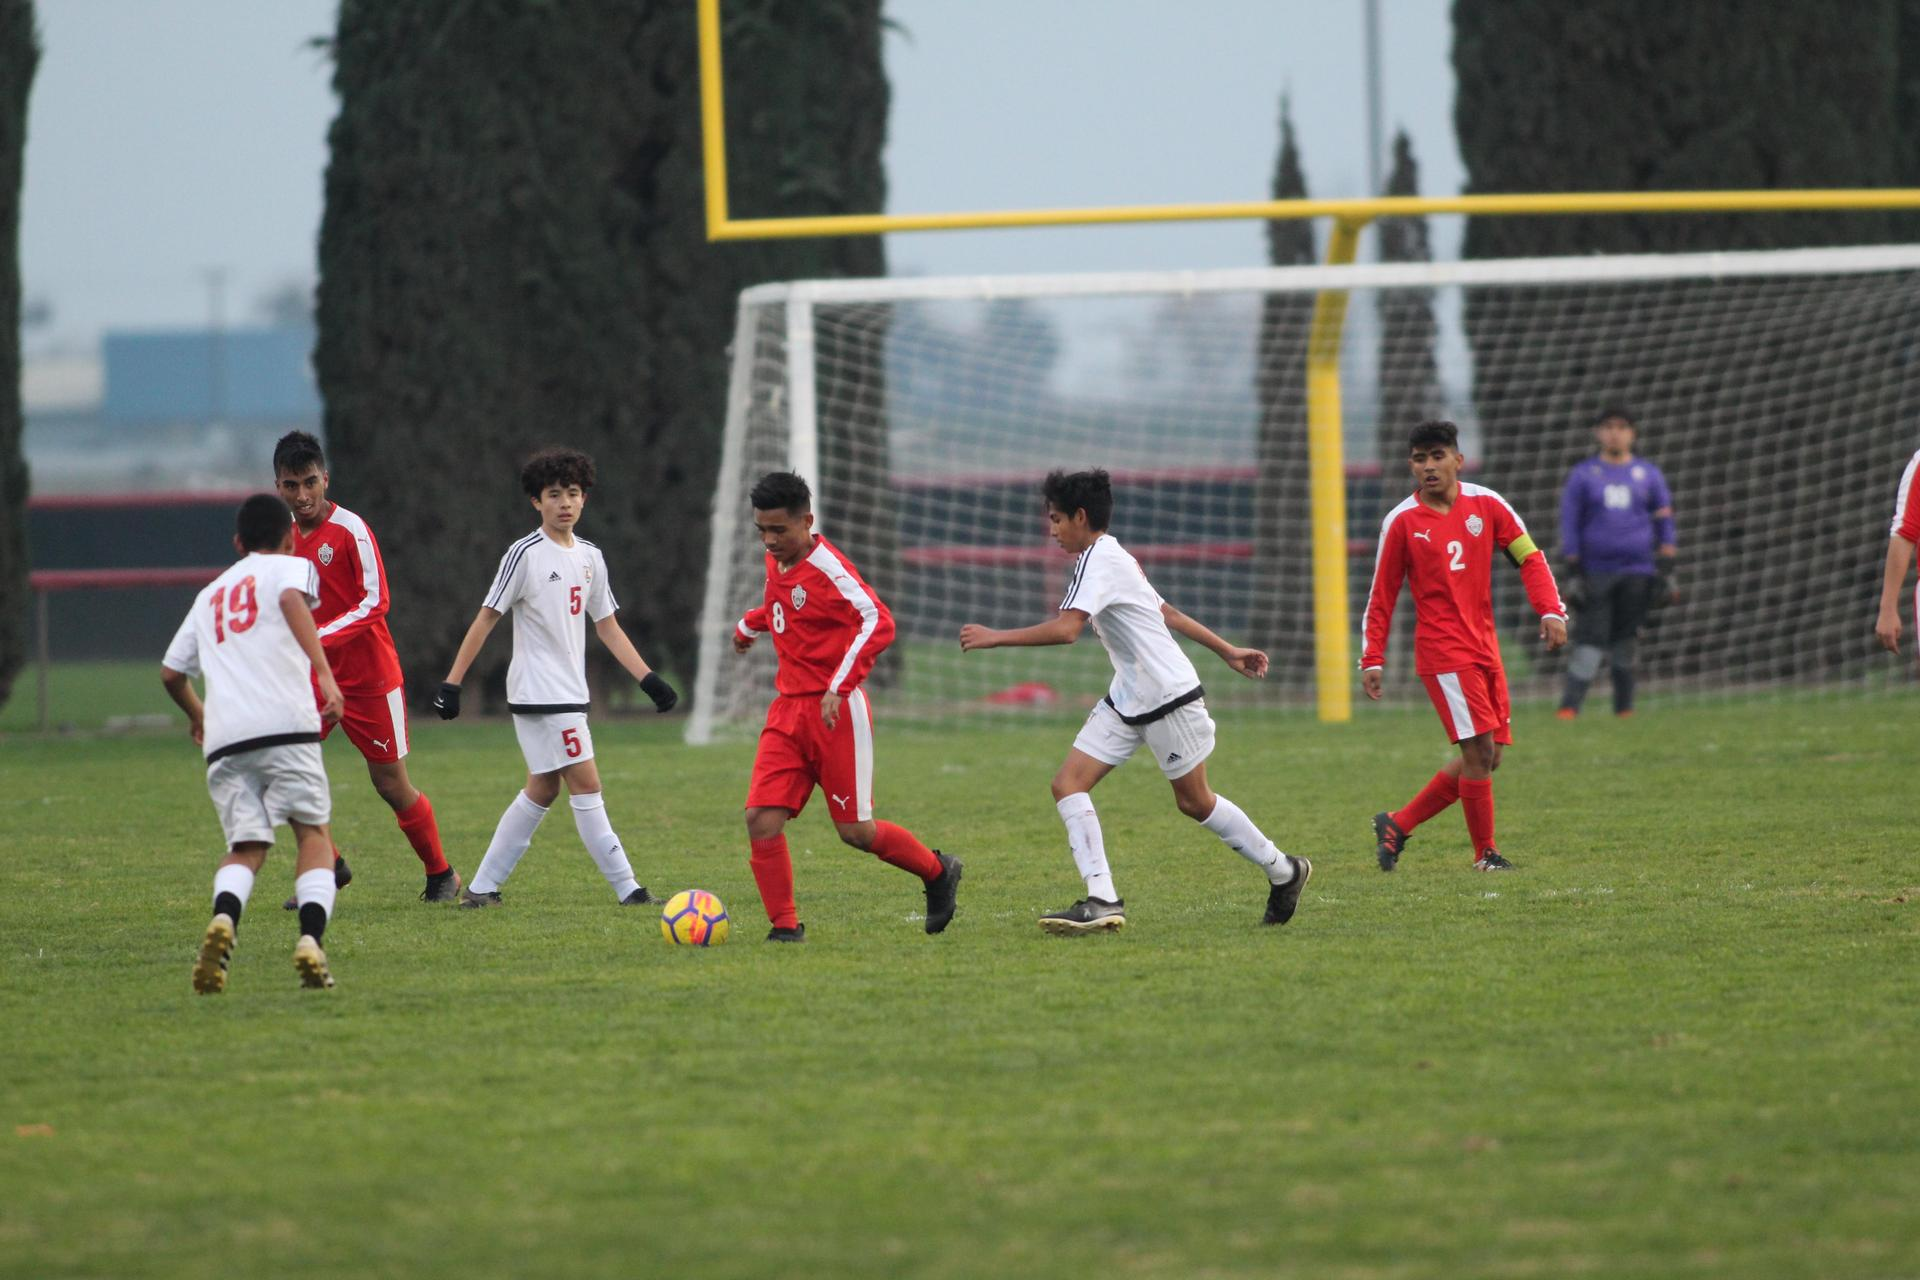 Junior Varsity boys playing soccer against McLane